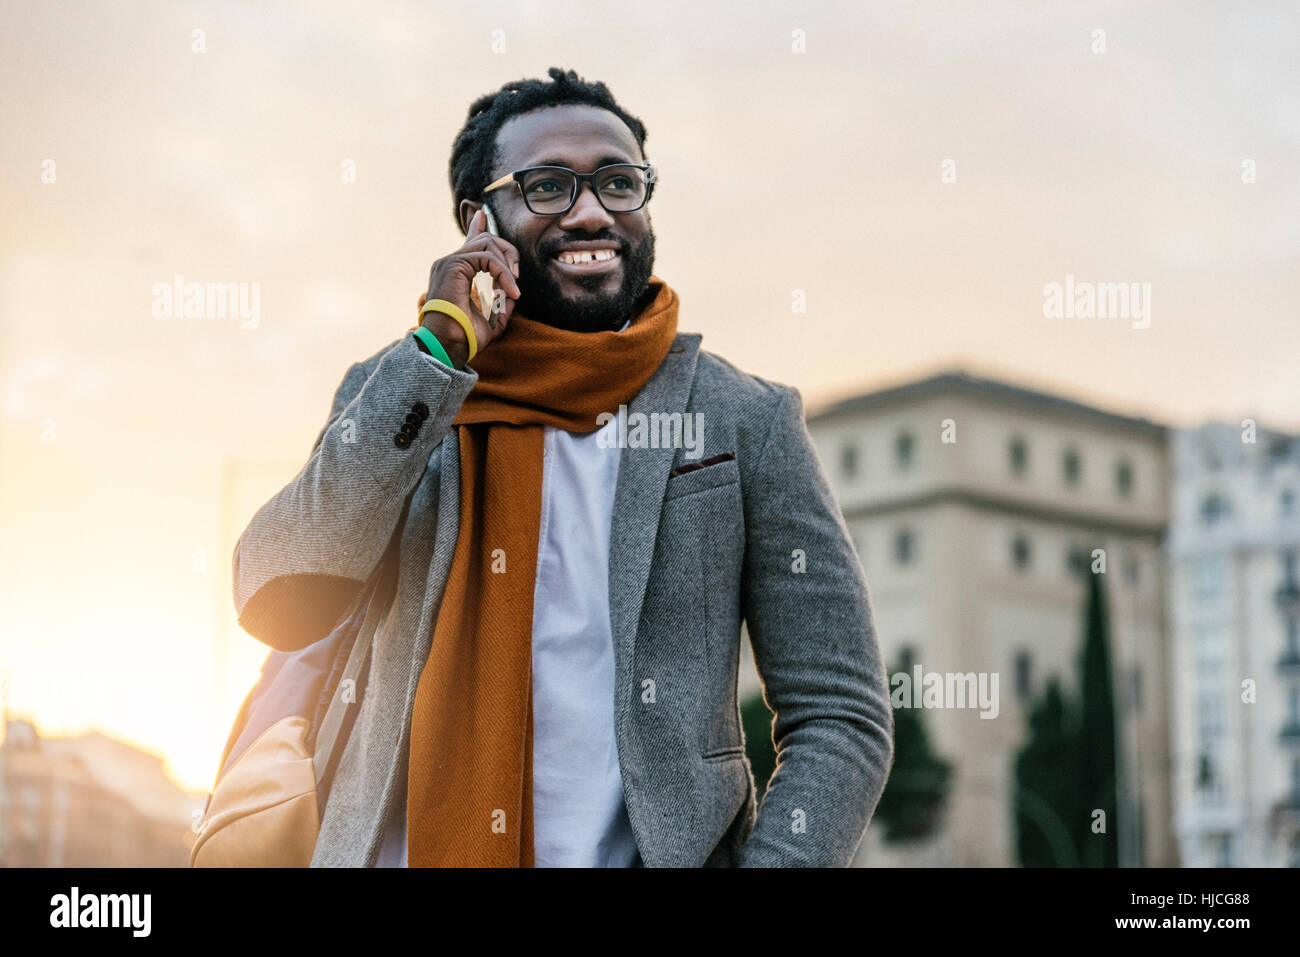 Businessman in the Street. Business Concept - Stock Image